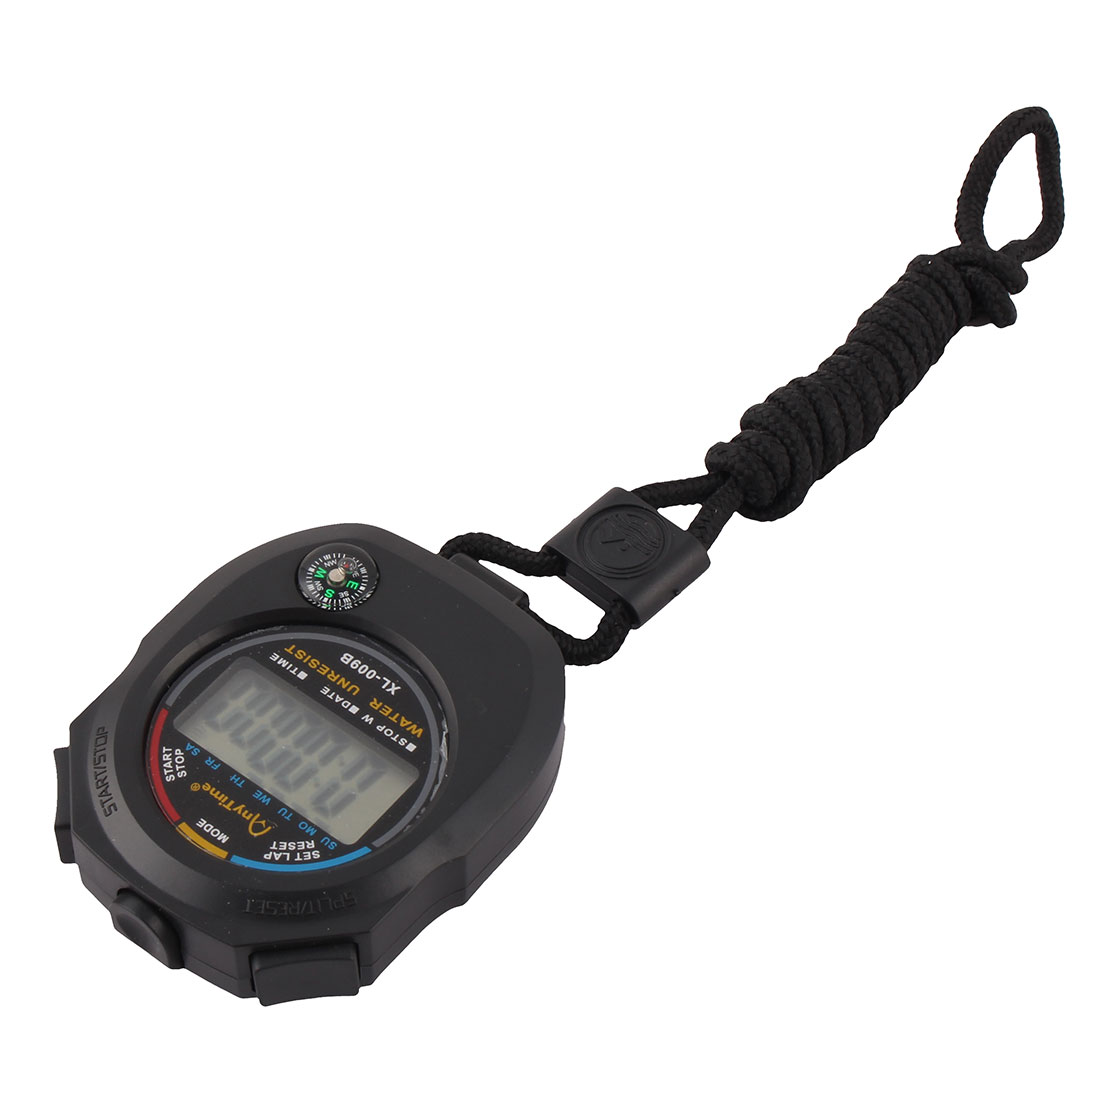 Sports Digital Stopwatch Chronograph Timer with Cord